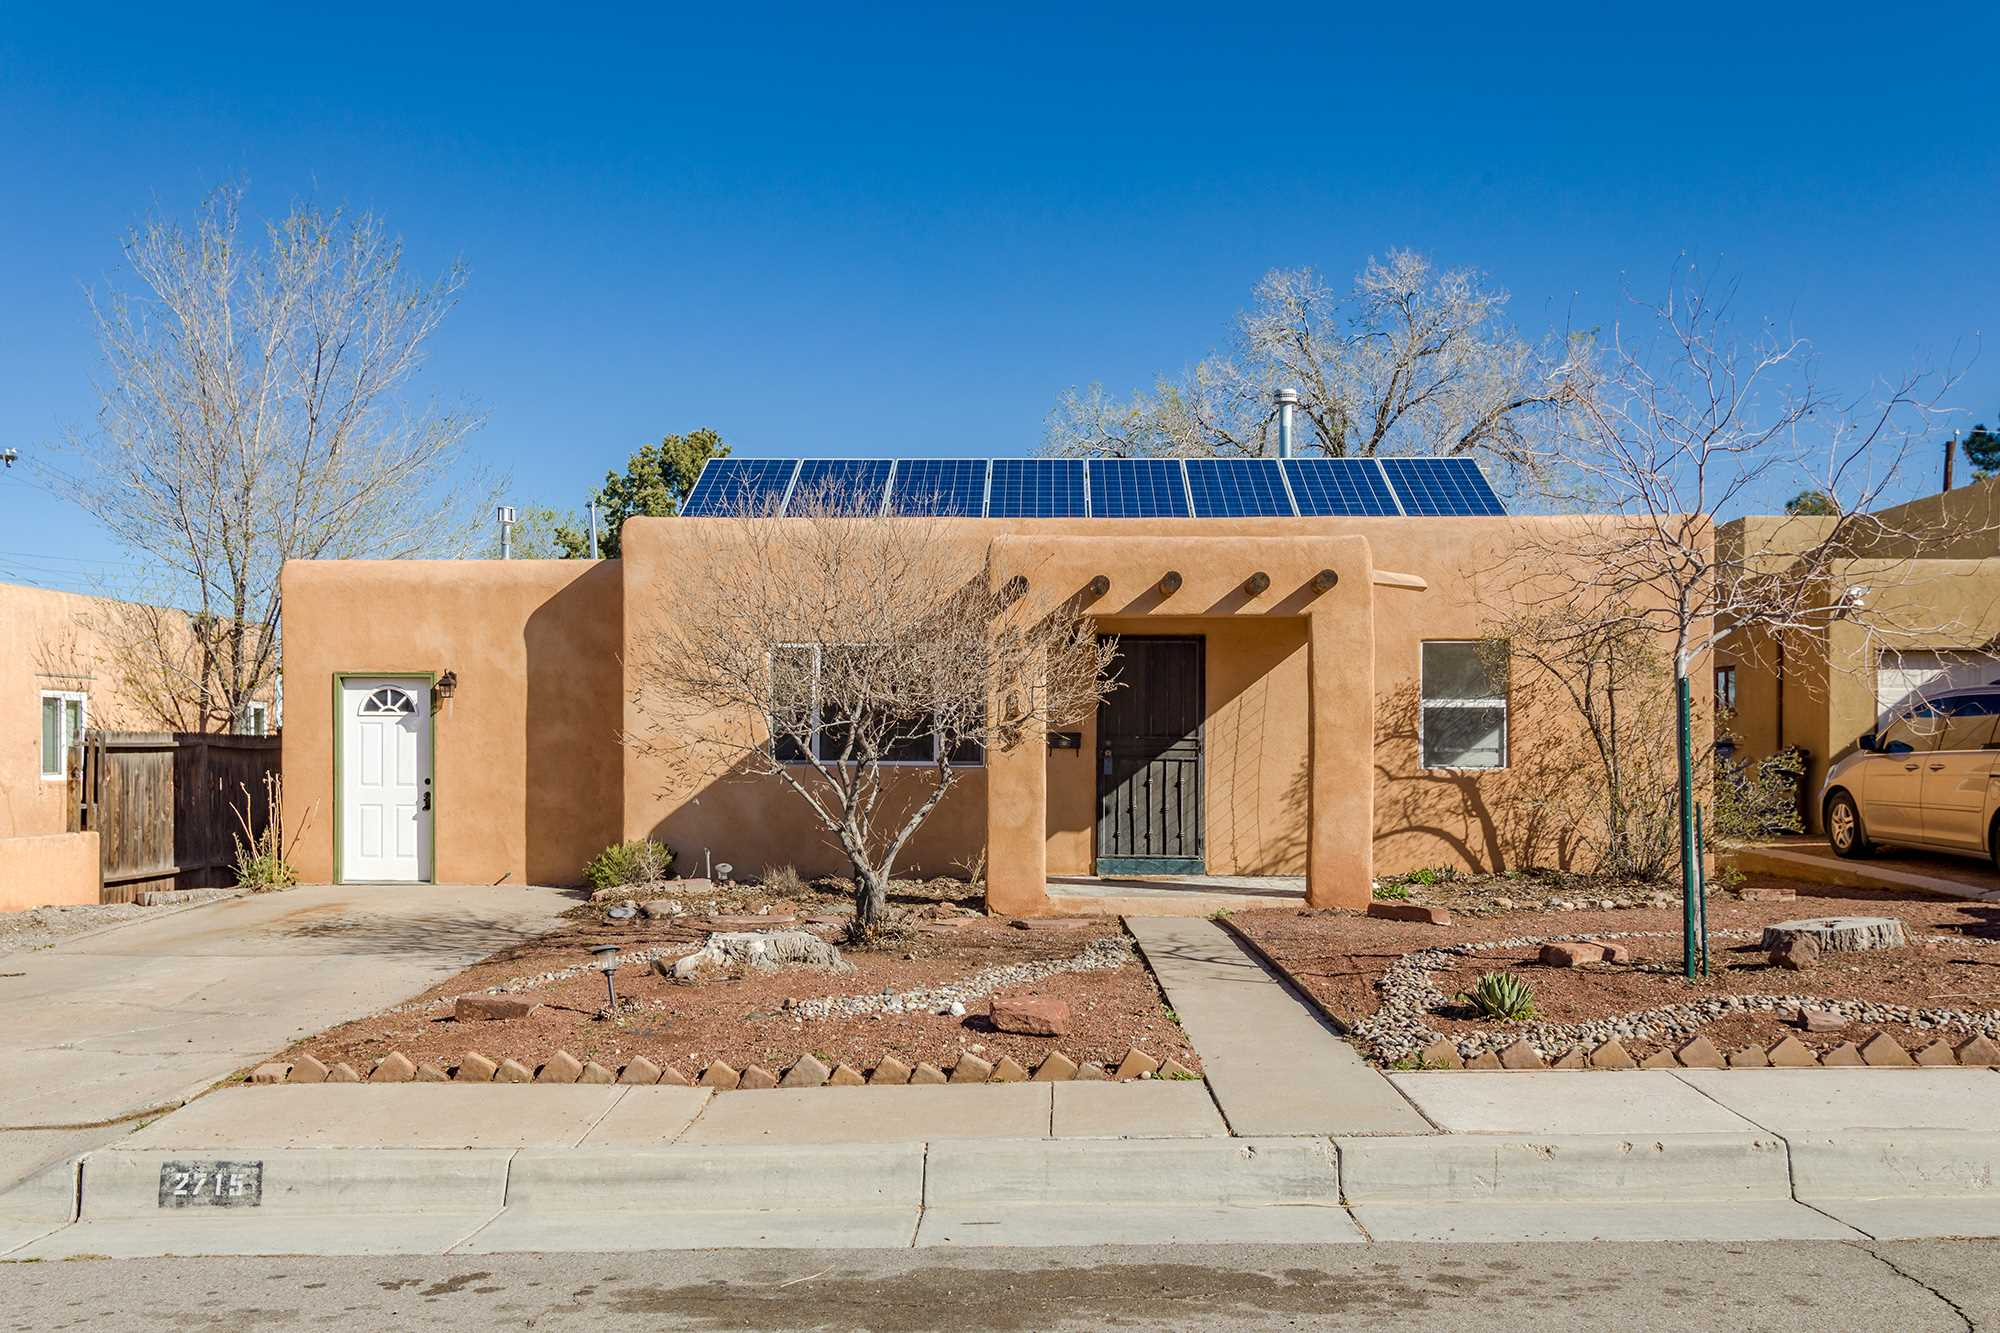 Fabulous 3 bed/2bath home near UNM, CNM, and Nob Hill! Move right in and enjoy the spacious front and back yards. Features include: Solar PV panels; hardwood floors; cove ceilings; large living room; 3rd bedroom could be used as office with separate entrance or den; covered backyard patio.